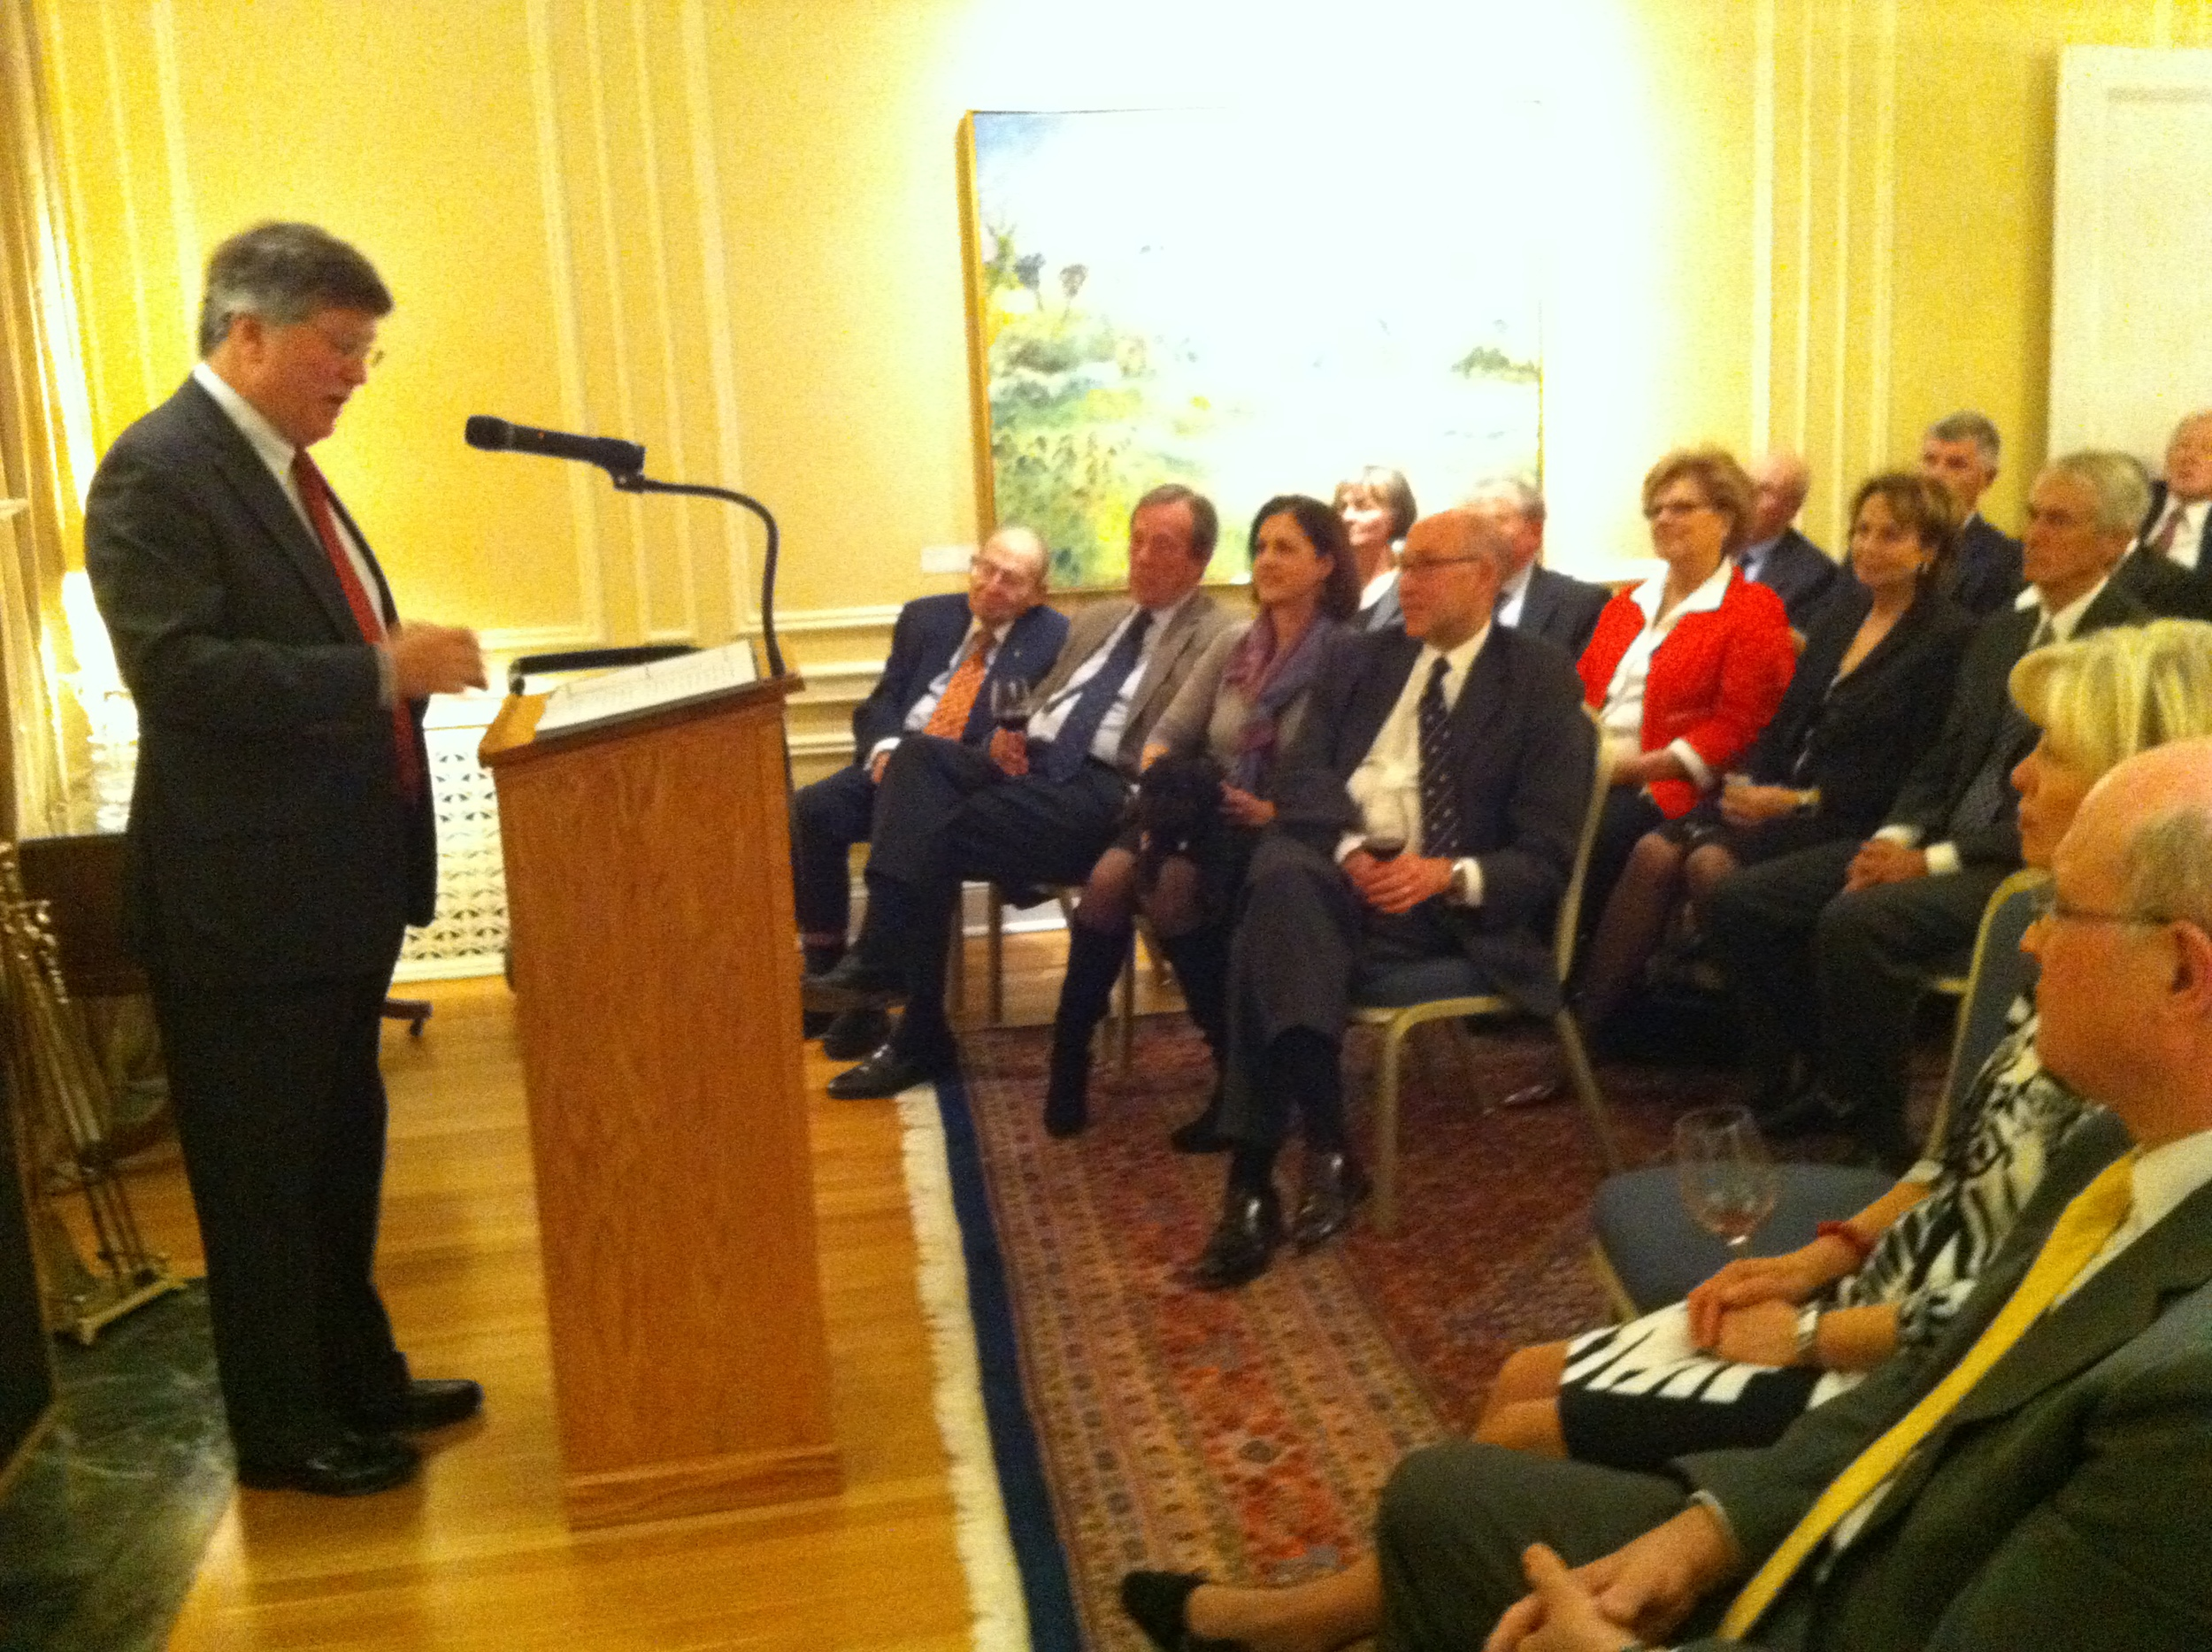 Prof. David Kennedy, the Rt. Hon. Herb Gray, Mrs. Julie Jacobson, Ambassador David Jacobson et al.